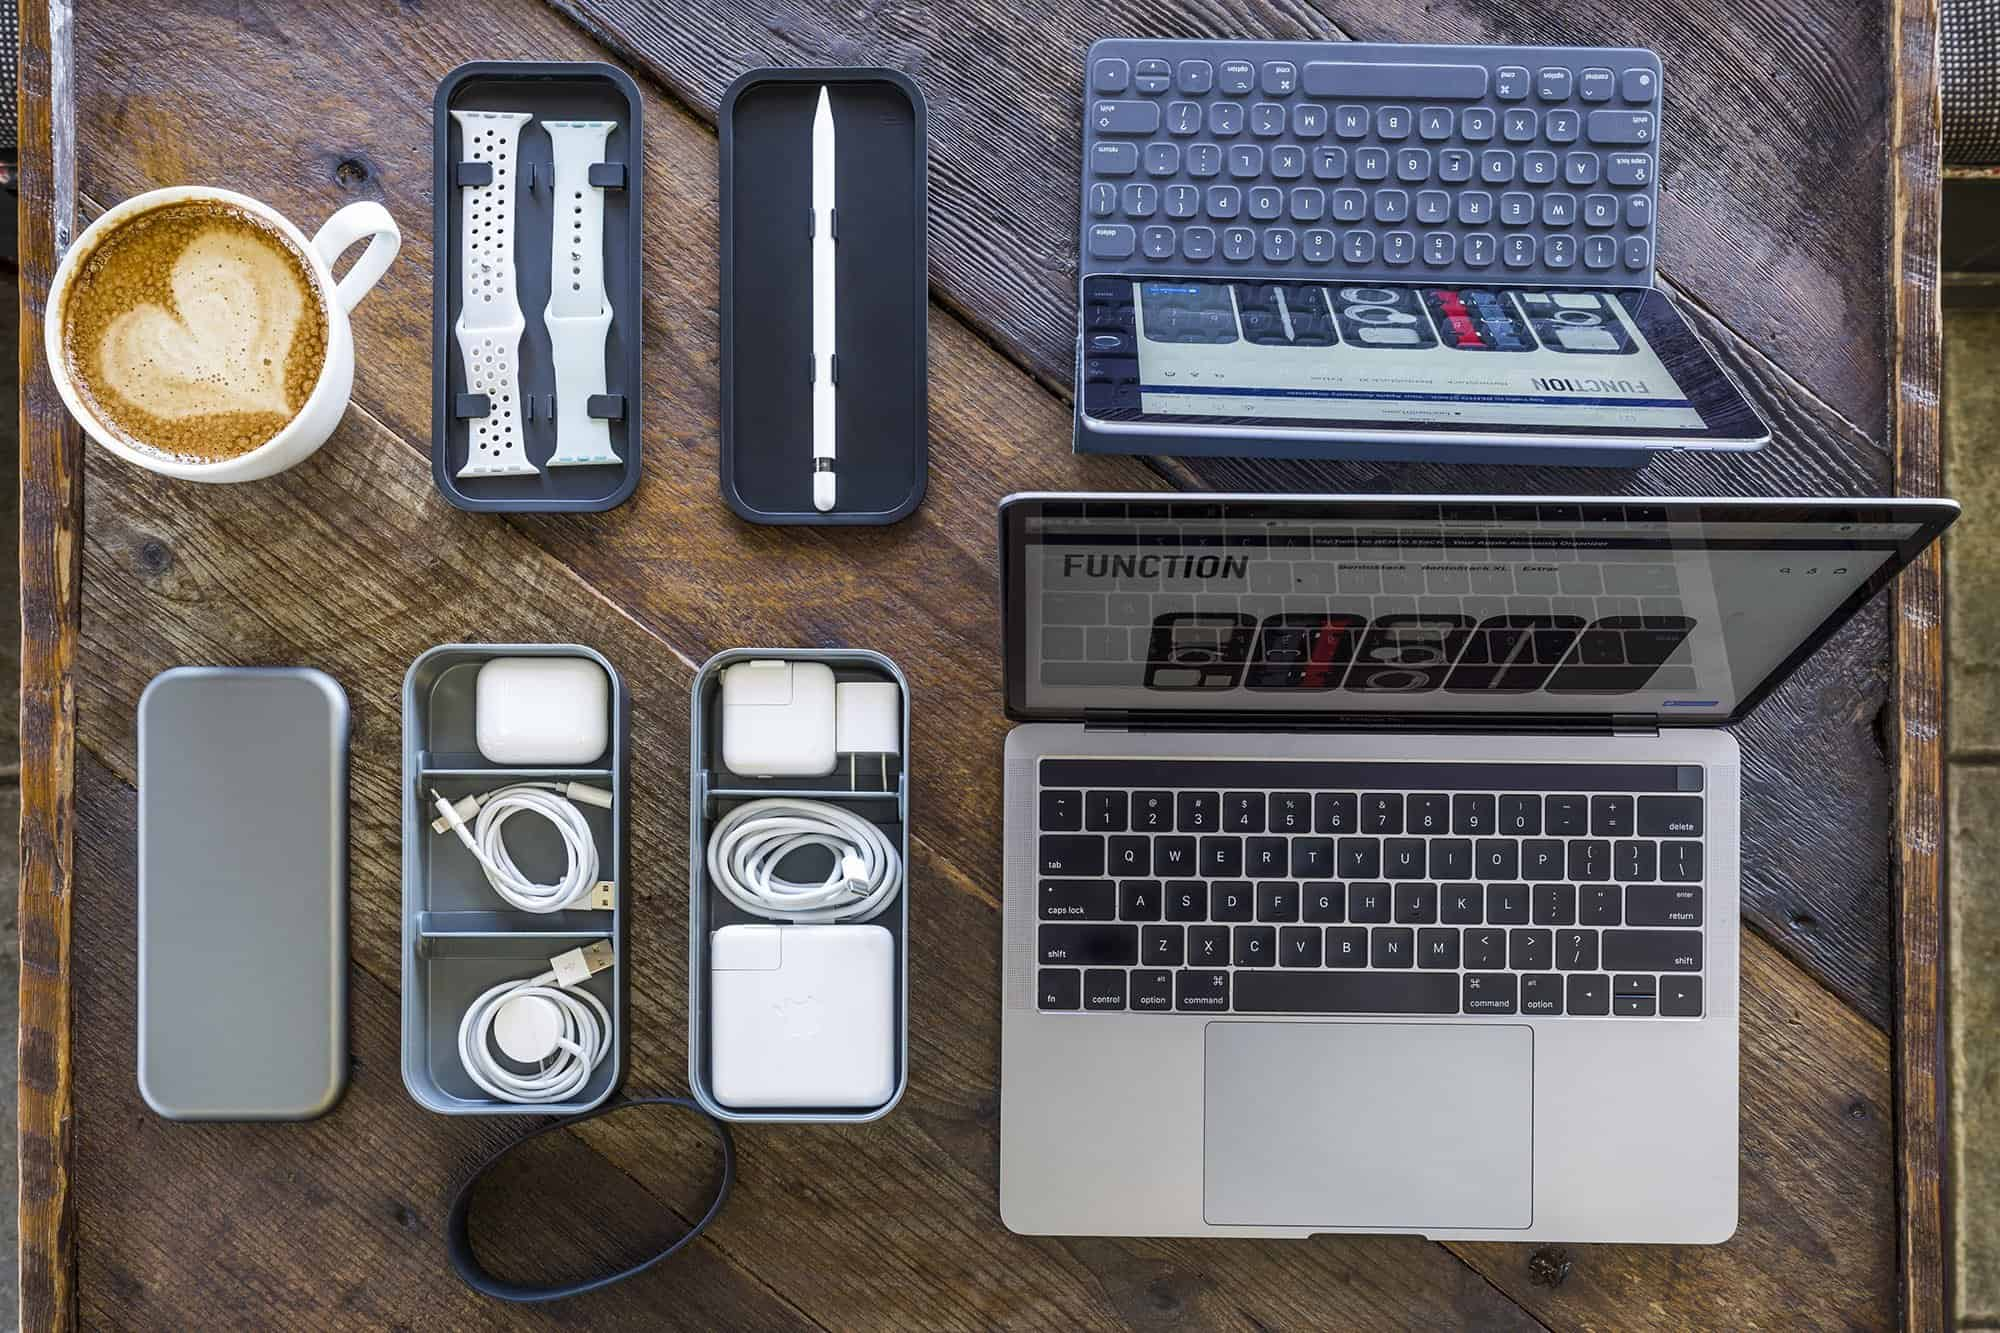 BentoStack: Your Apple extras stay orderly in this sleek, modular organizer inspired by Japanese design